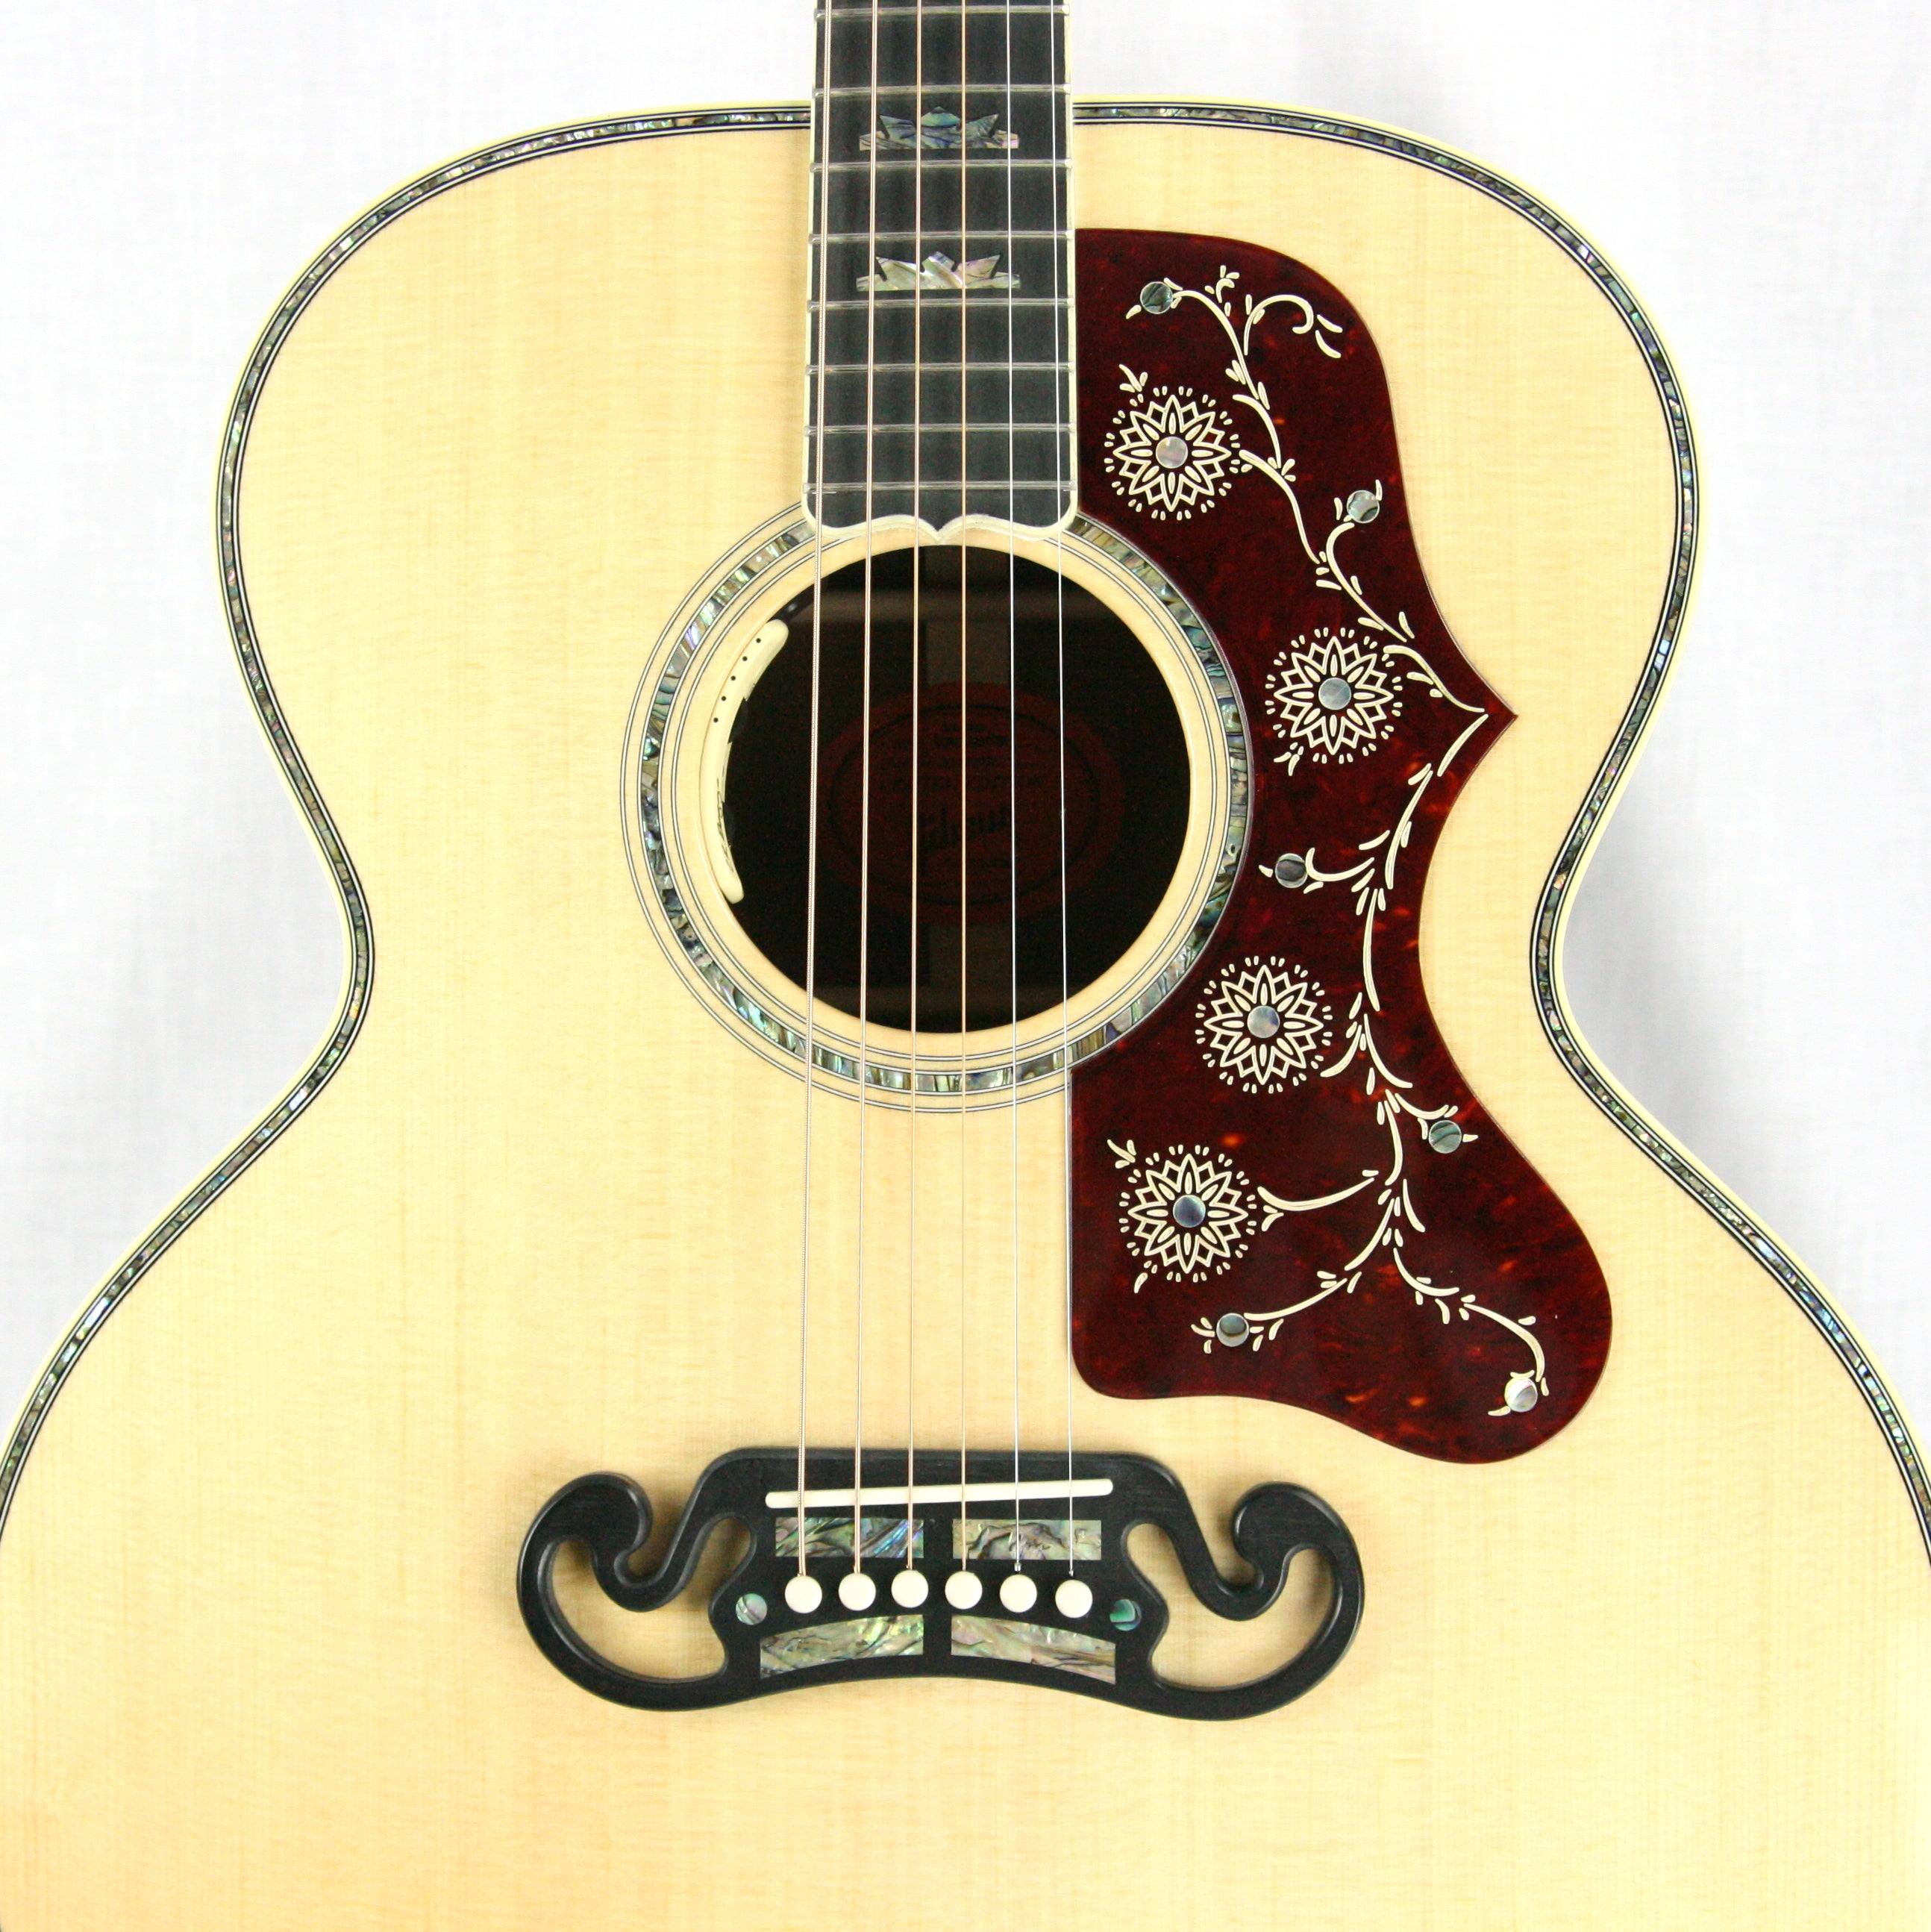 2017 Gibson Custom Shop SJ-200 KOA! Abalone, Limited Edition! j200 Acoustic Guitar j45